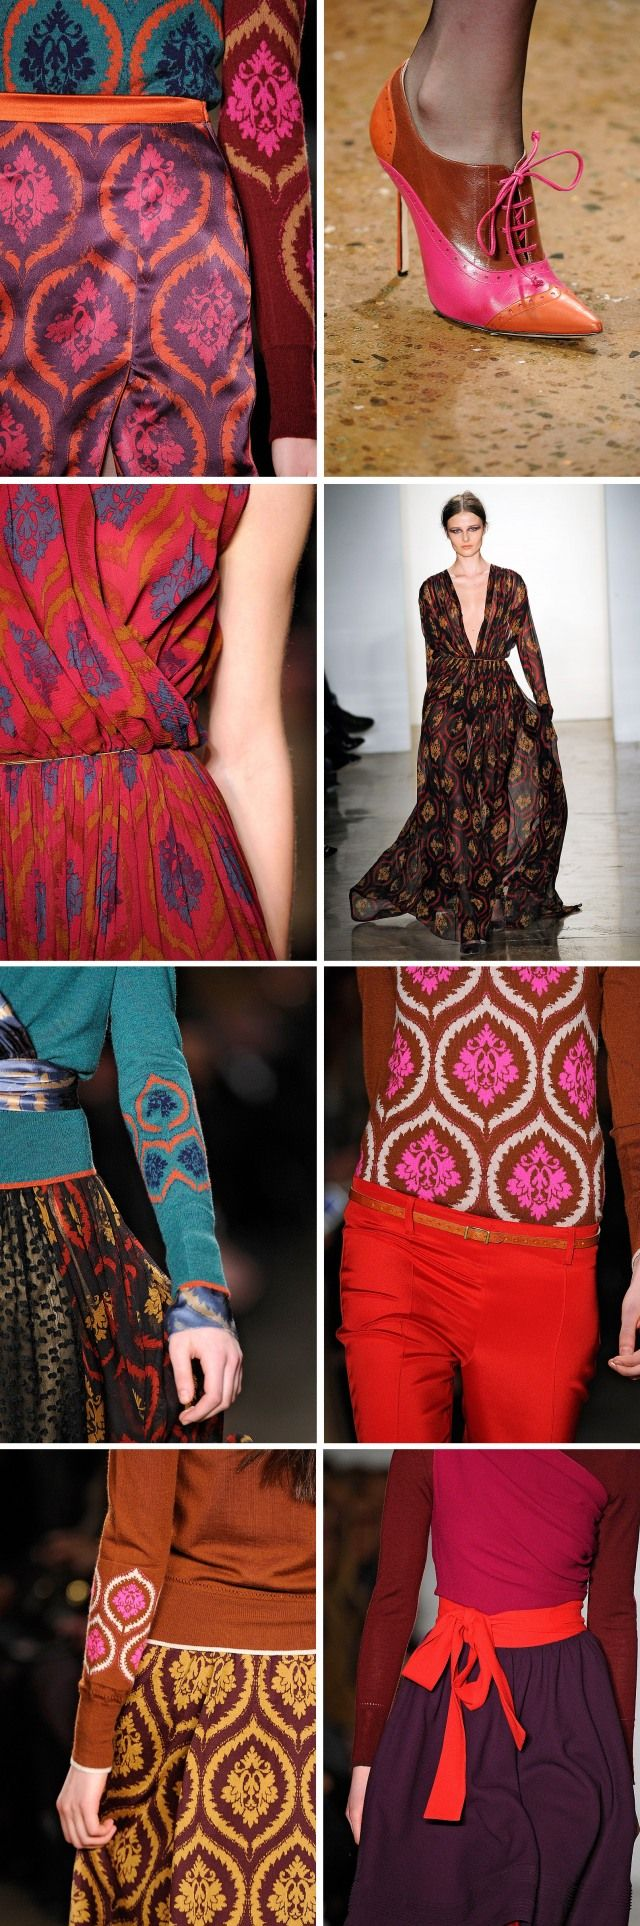 Sophie Theallet Fall 2012. #brocade #motif #textile  love the shoe style too but want in brown or black, adorable!